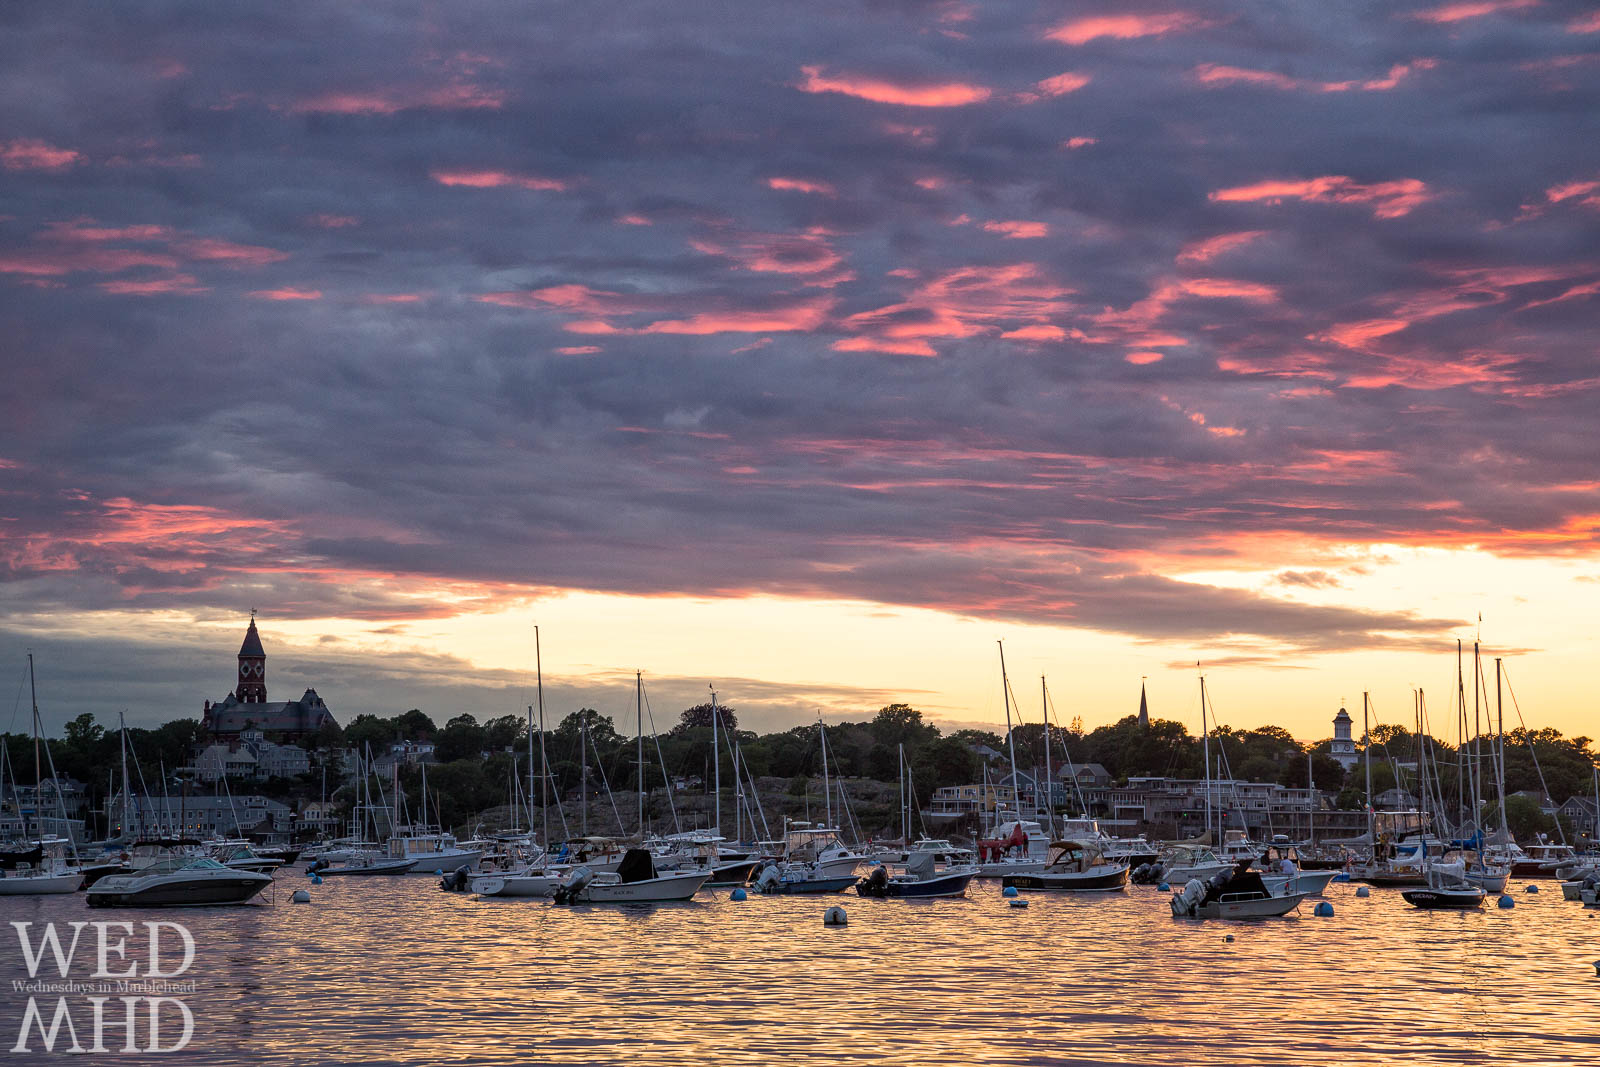 Boats are stacked up for sunset between Abbot Hall and Grace Community Church with a pink sky above and golden light on the water